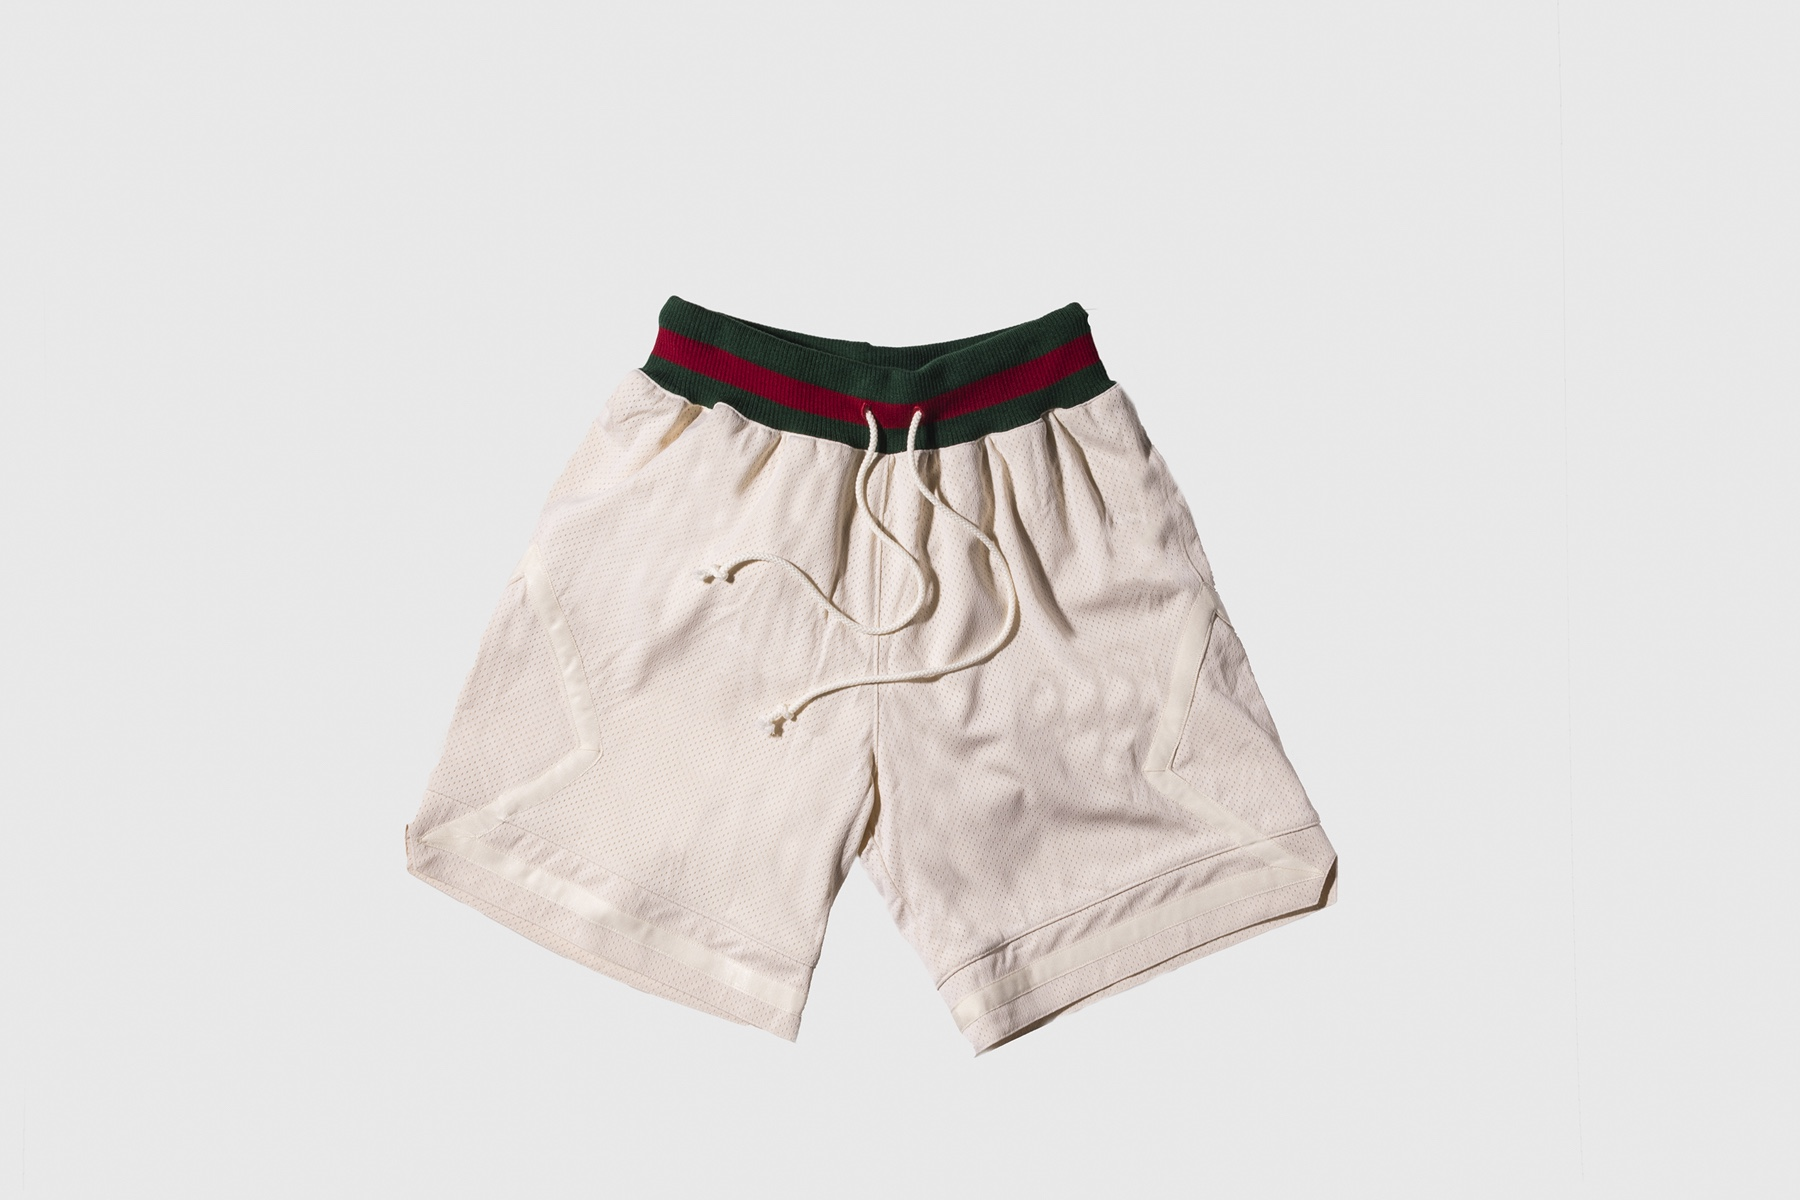 eric-emanuel-gucci-inspired-basketball-shorts-01